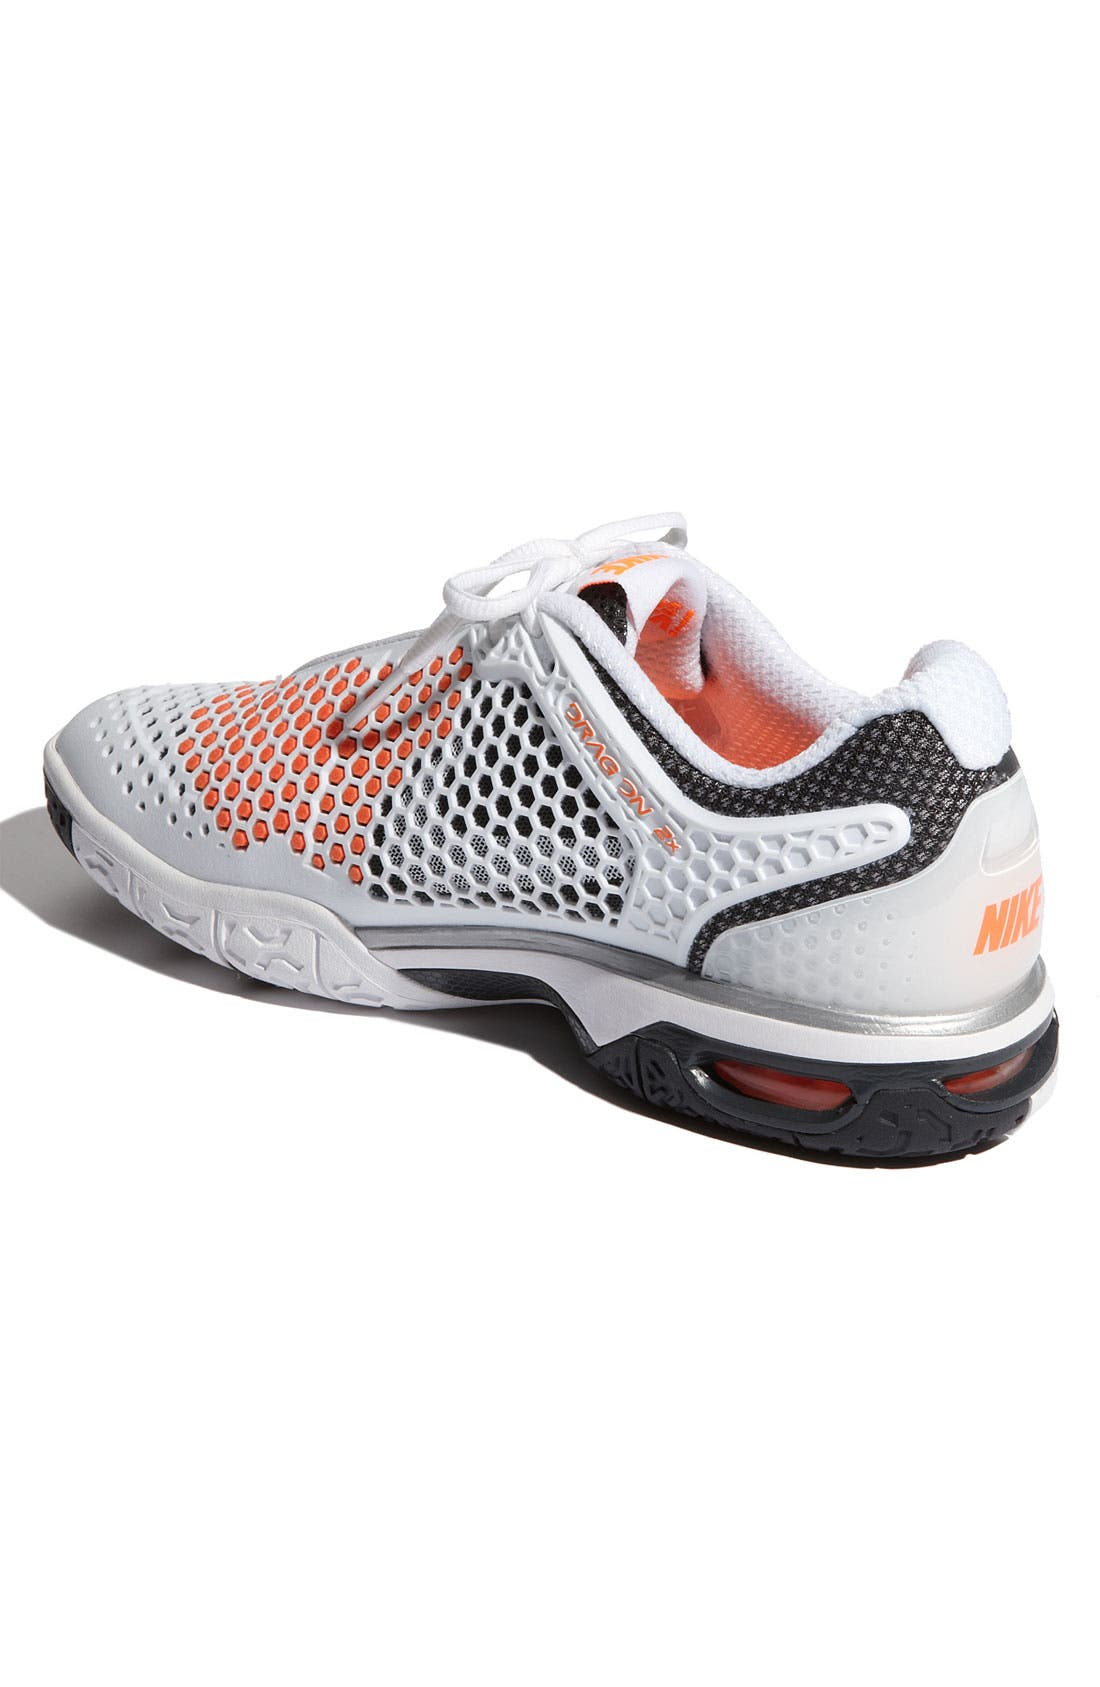 Alternate Image 3  - Nike 'Air Max Court Ballistic 3.3' Tennis Shoe (Men)